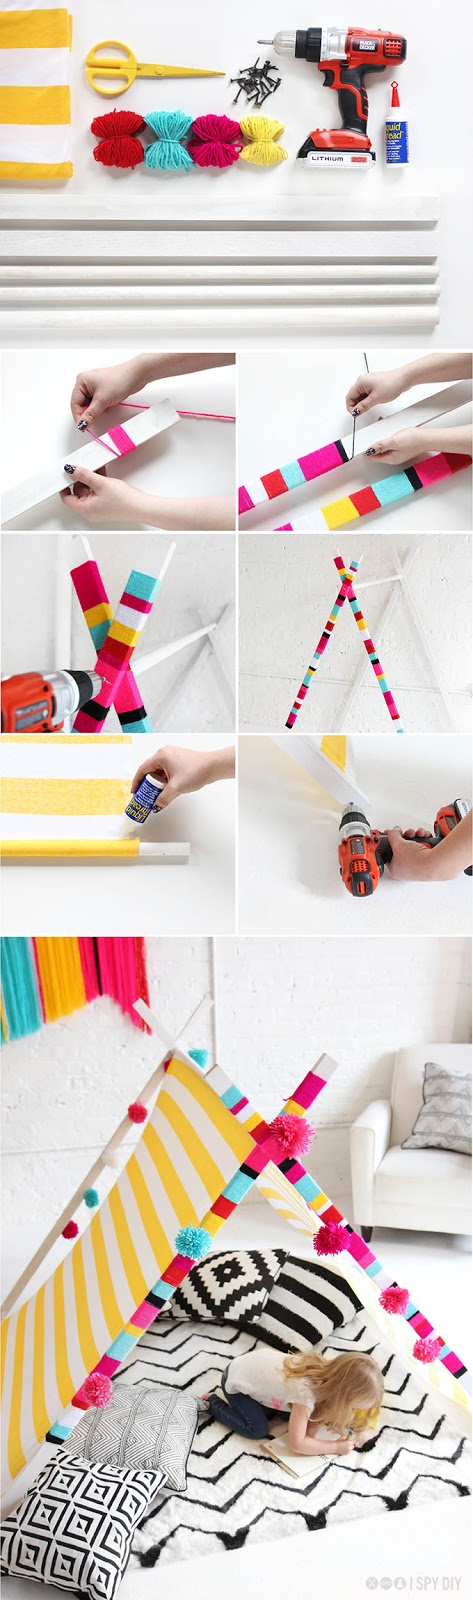 http://ispydiy.com/one-material-two-diys-cotton-yarn/